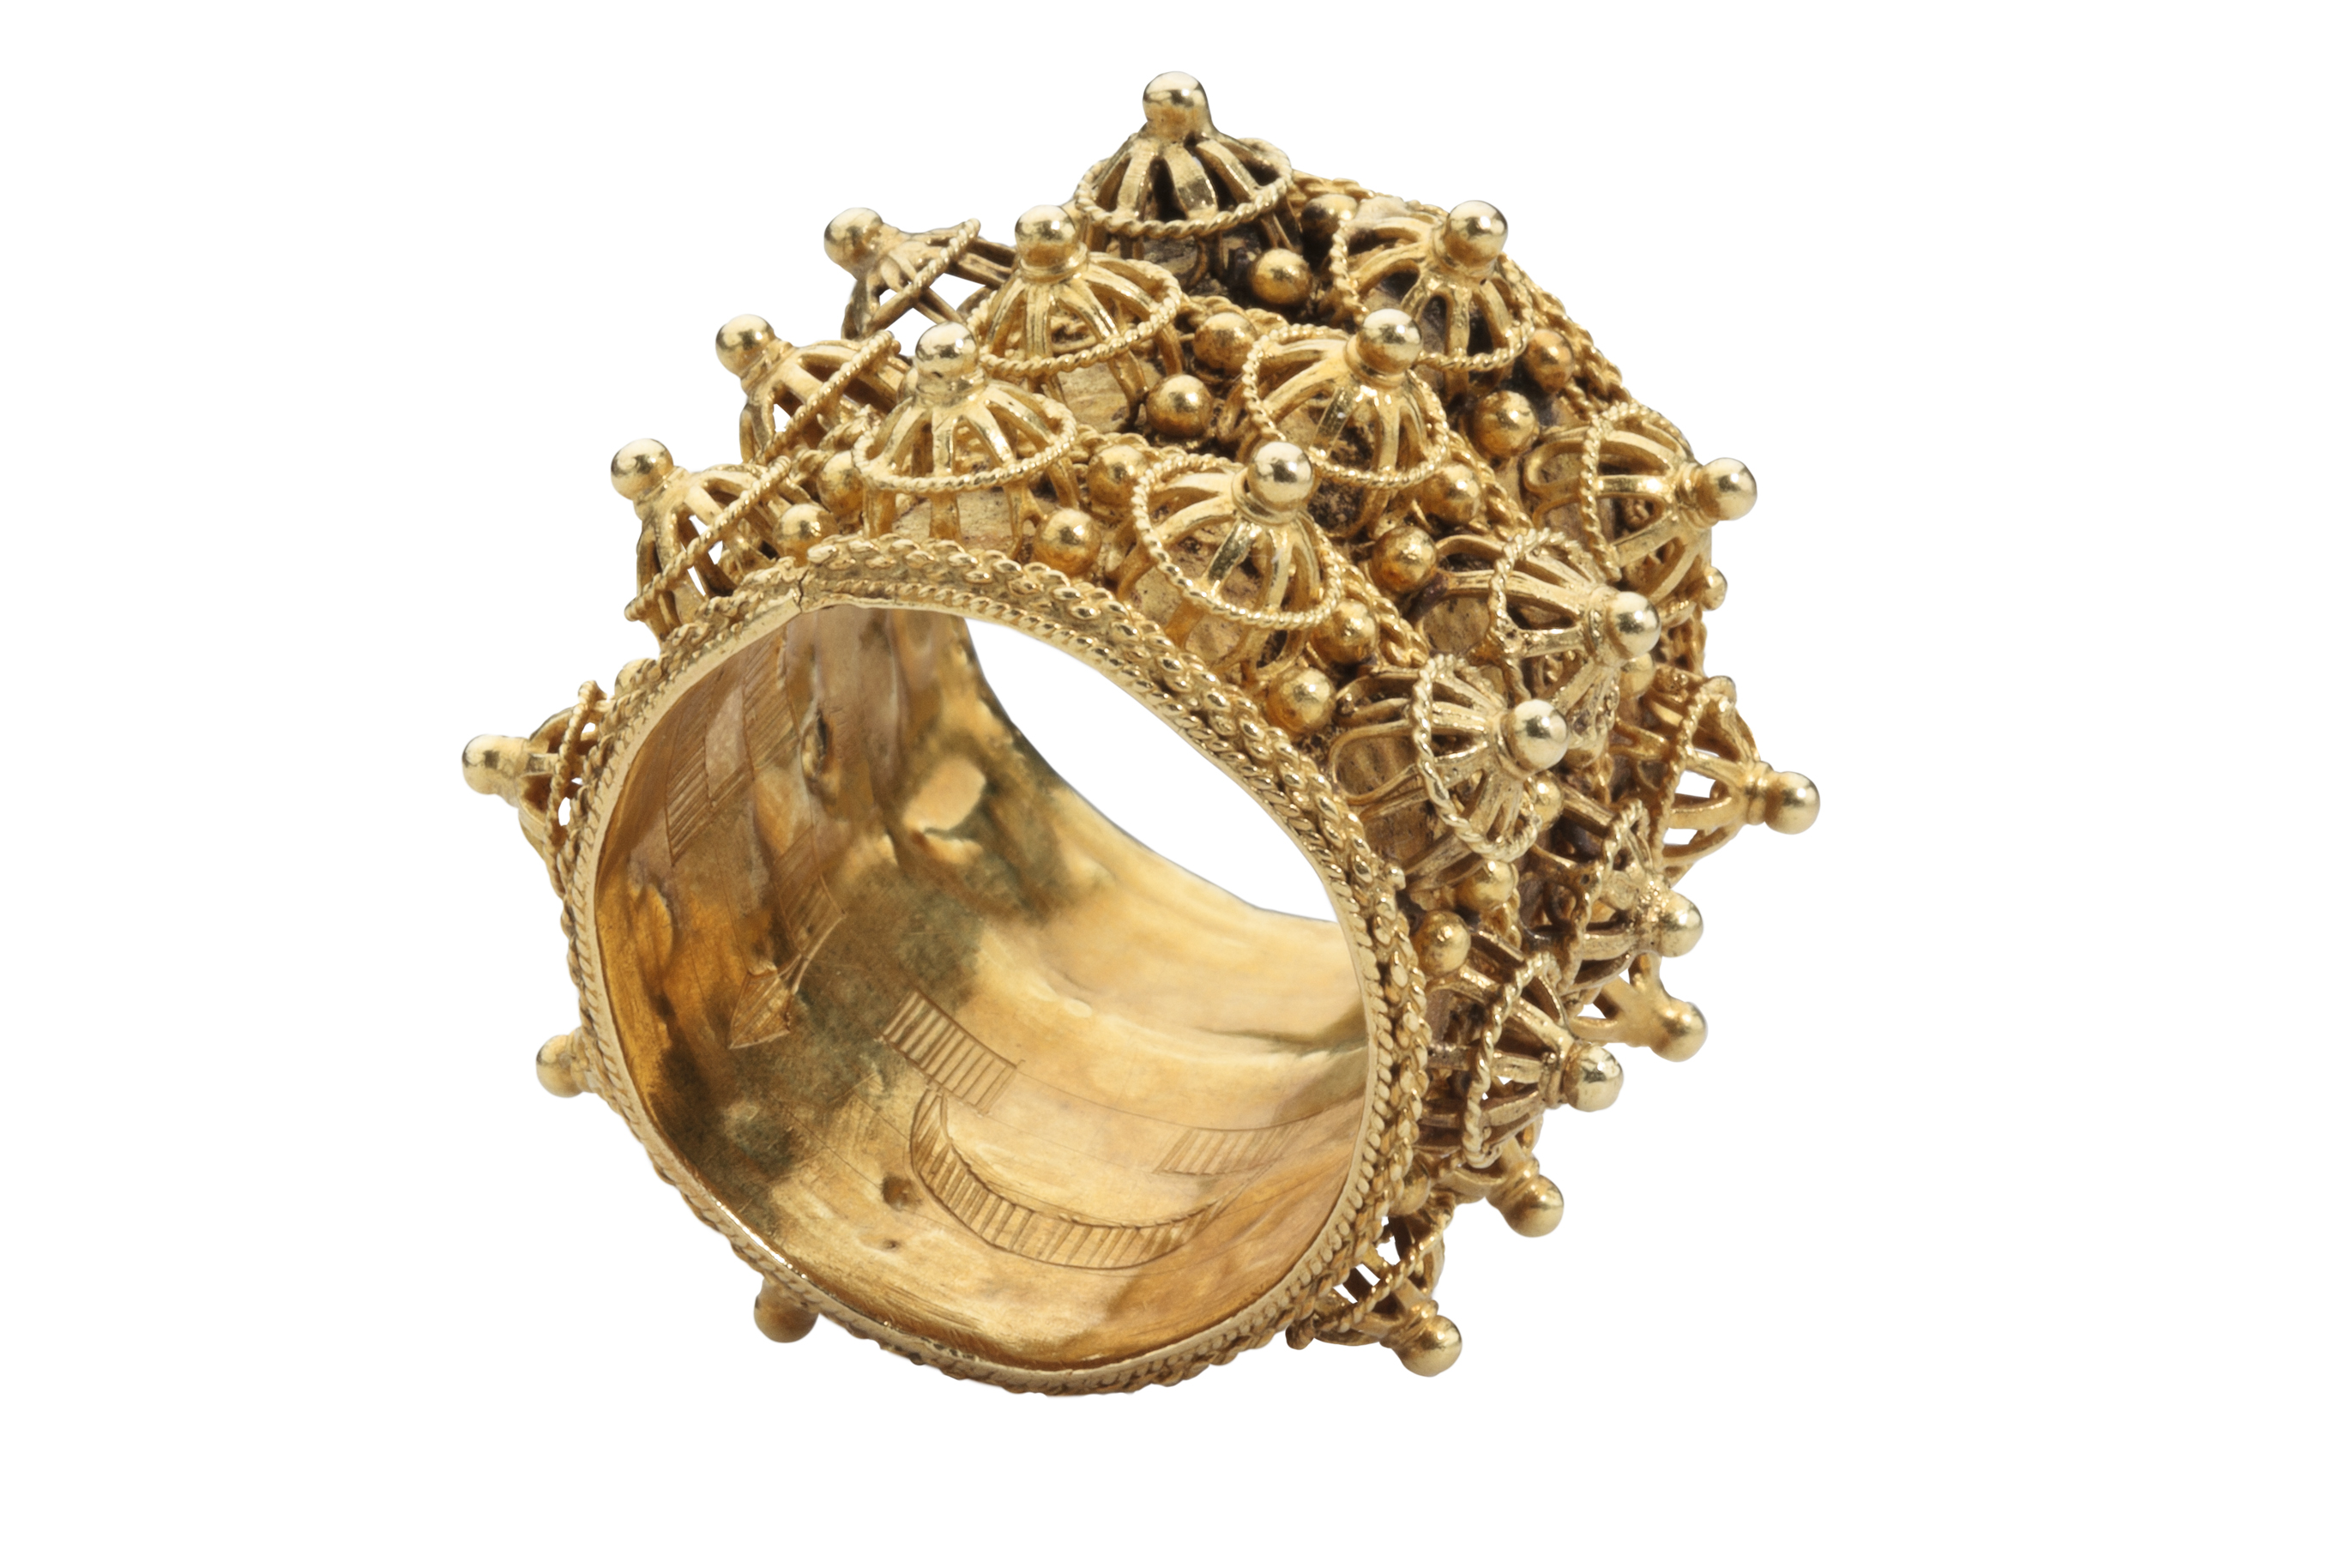 rediscovering my roots ri b western wedding rings 09 23 JewishMarriageRing2copy